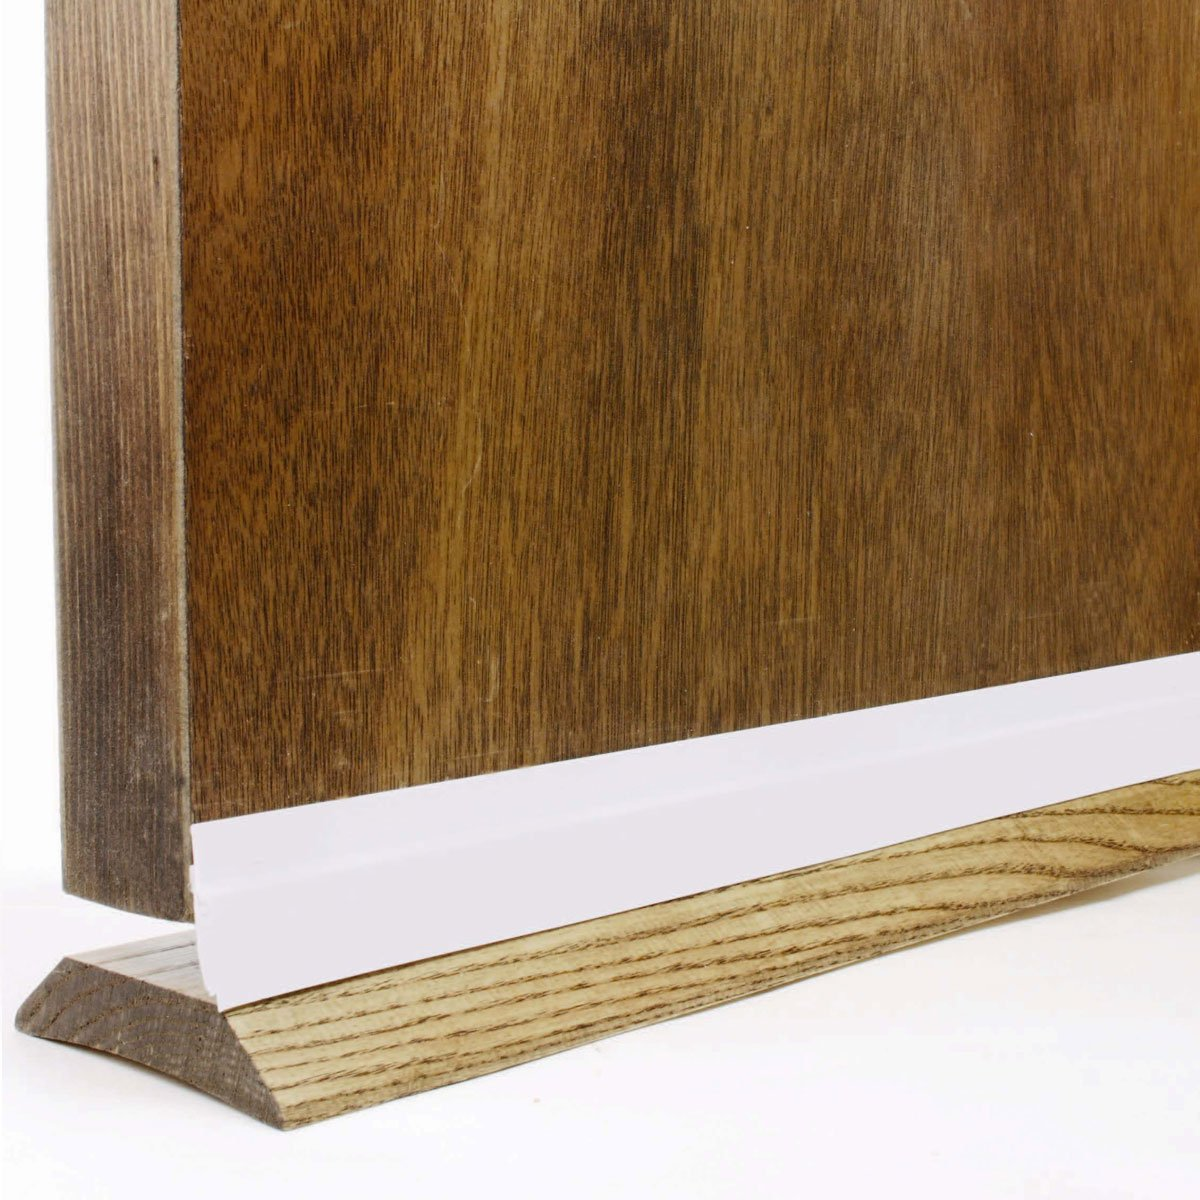 M-D Building Products 5587 Self Adhesive Door Sweep, 36 Inches ...